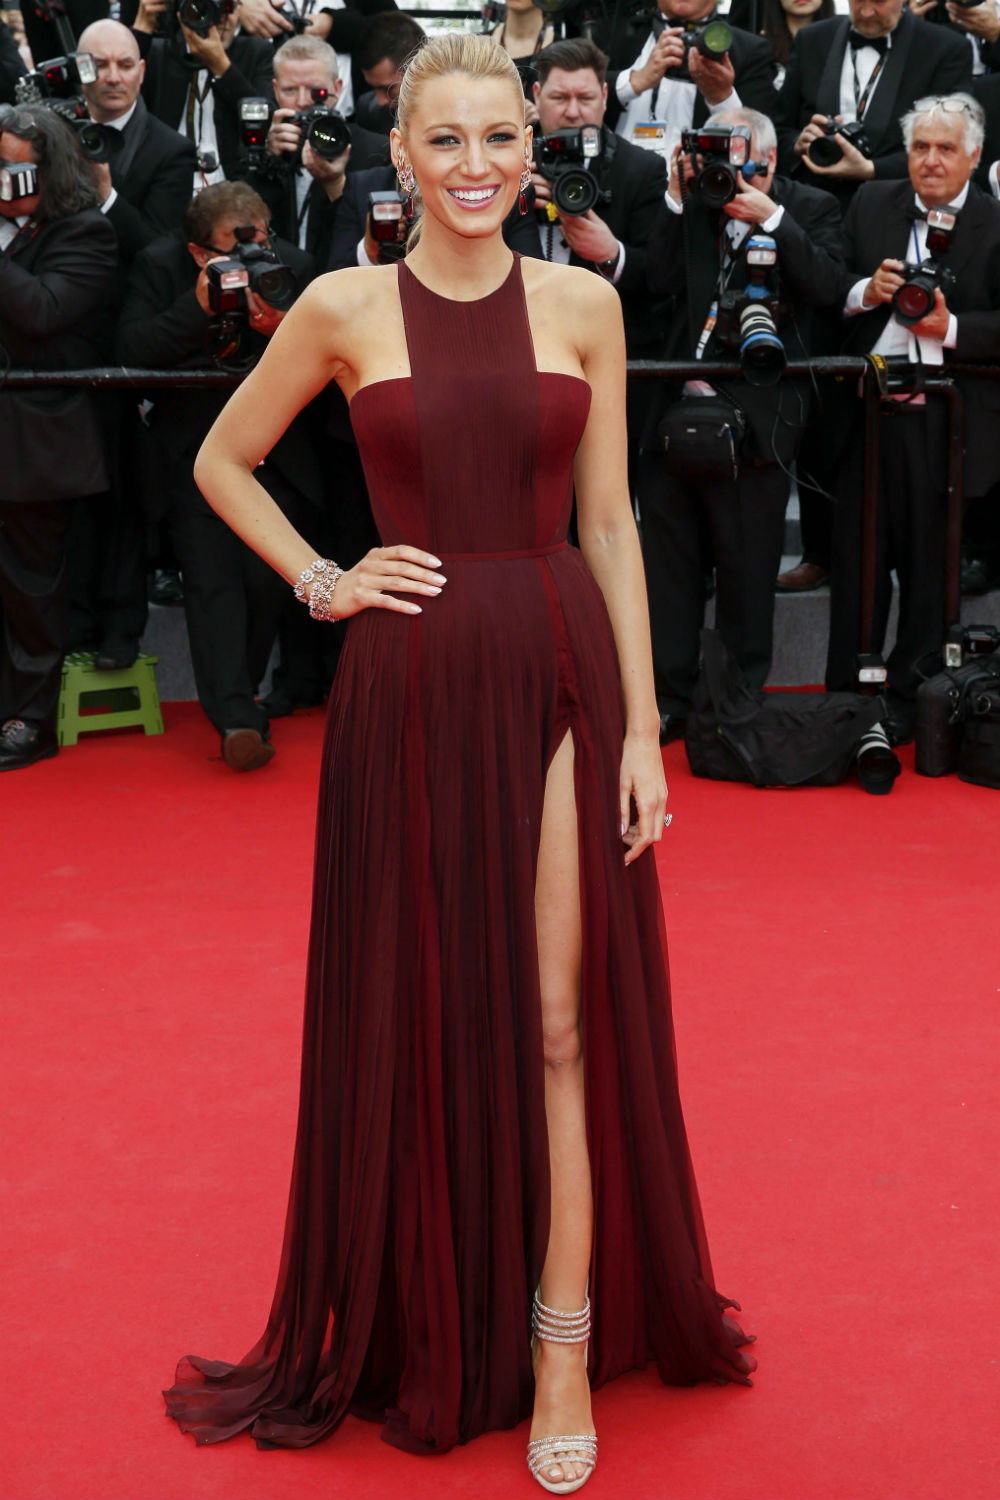 5bcd0cbf899 Blake Lively Wears Gucci Dress For Cannes Film Festival 2014 Opening